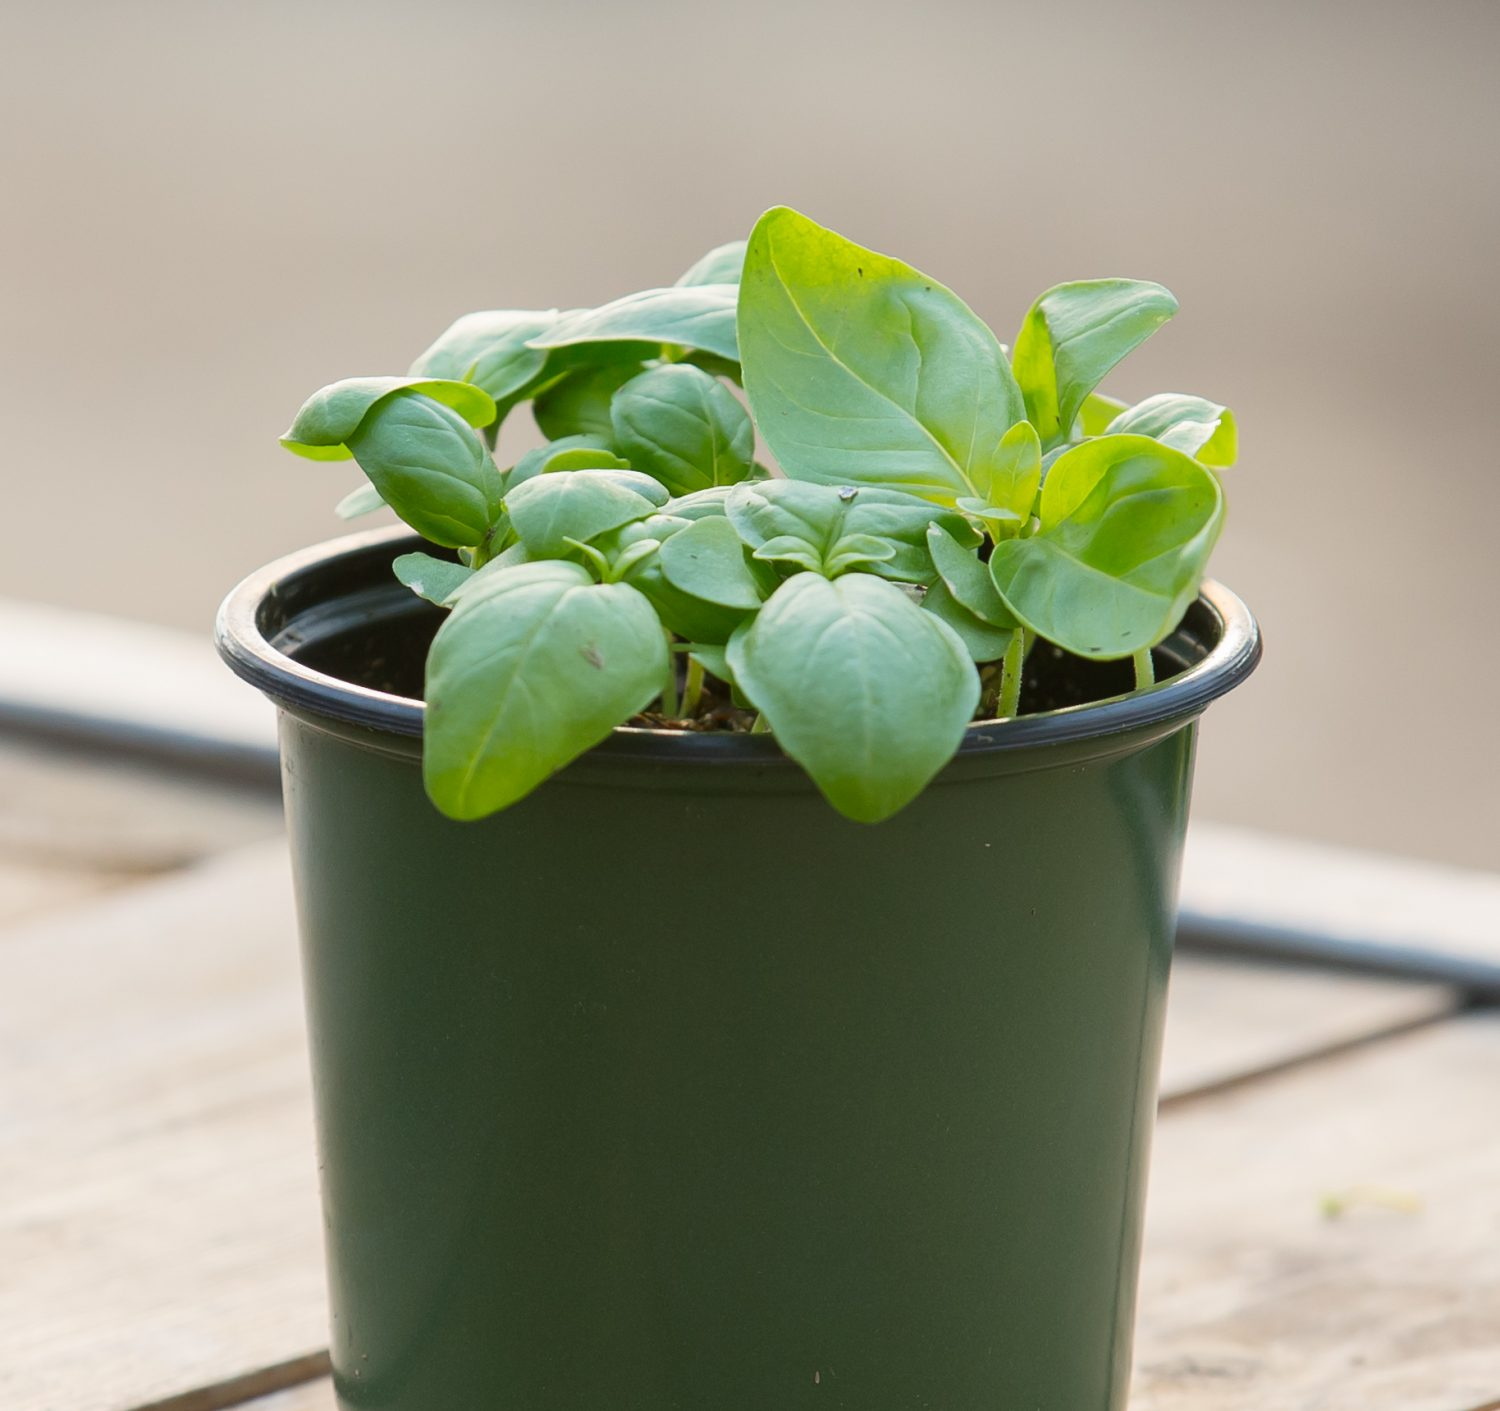 Potted Basil Seedlings